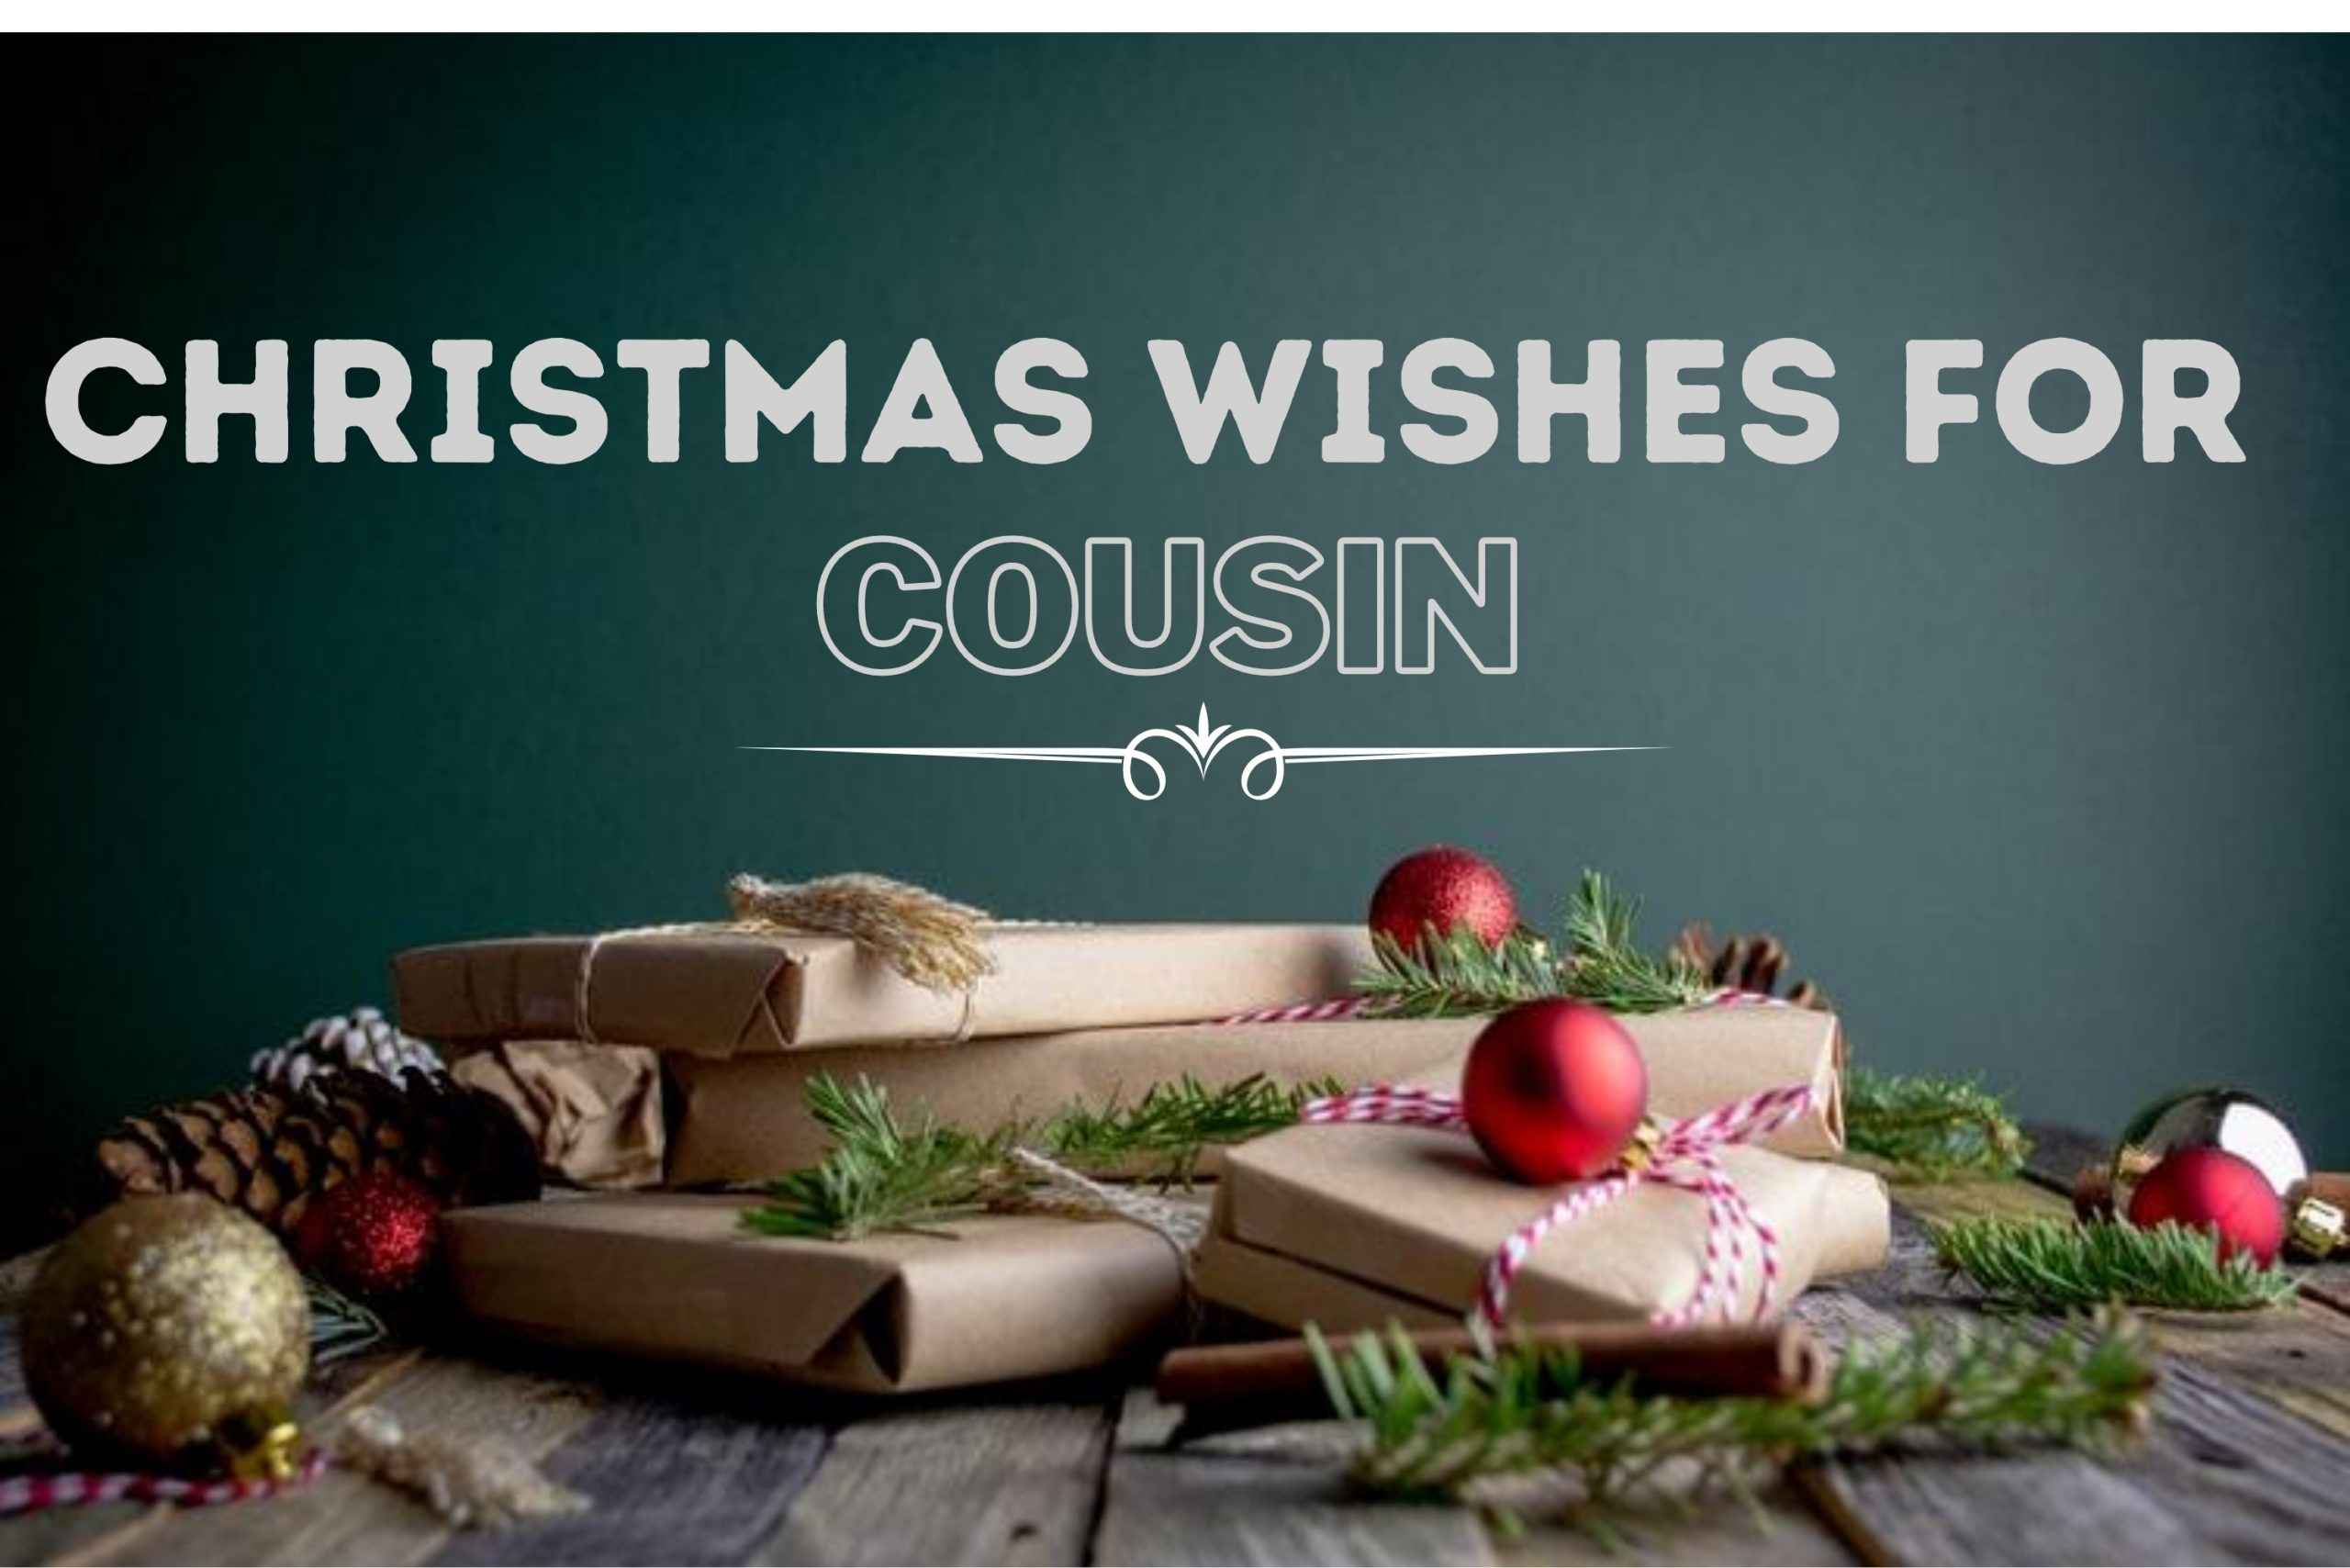 Christmas Wishes for cousin